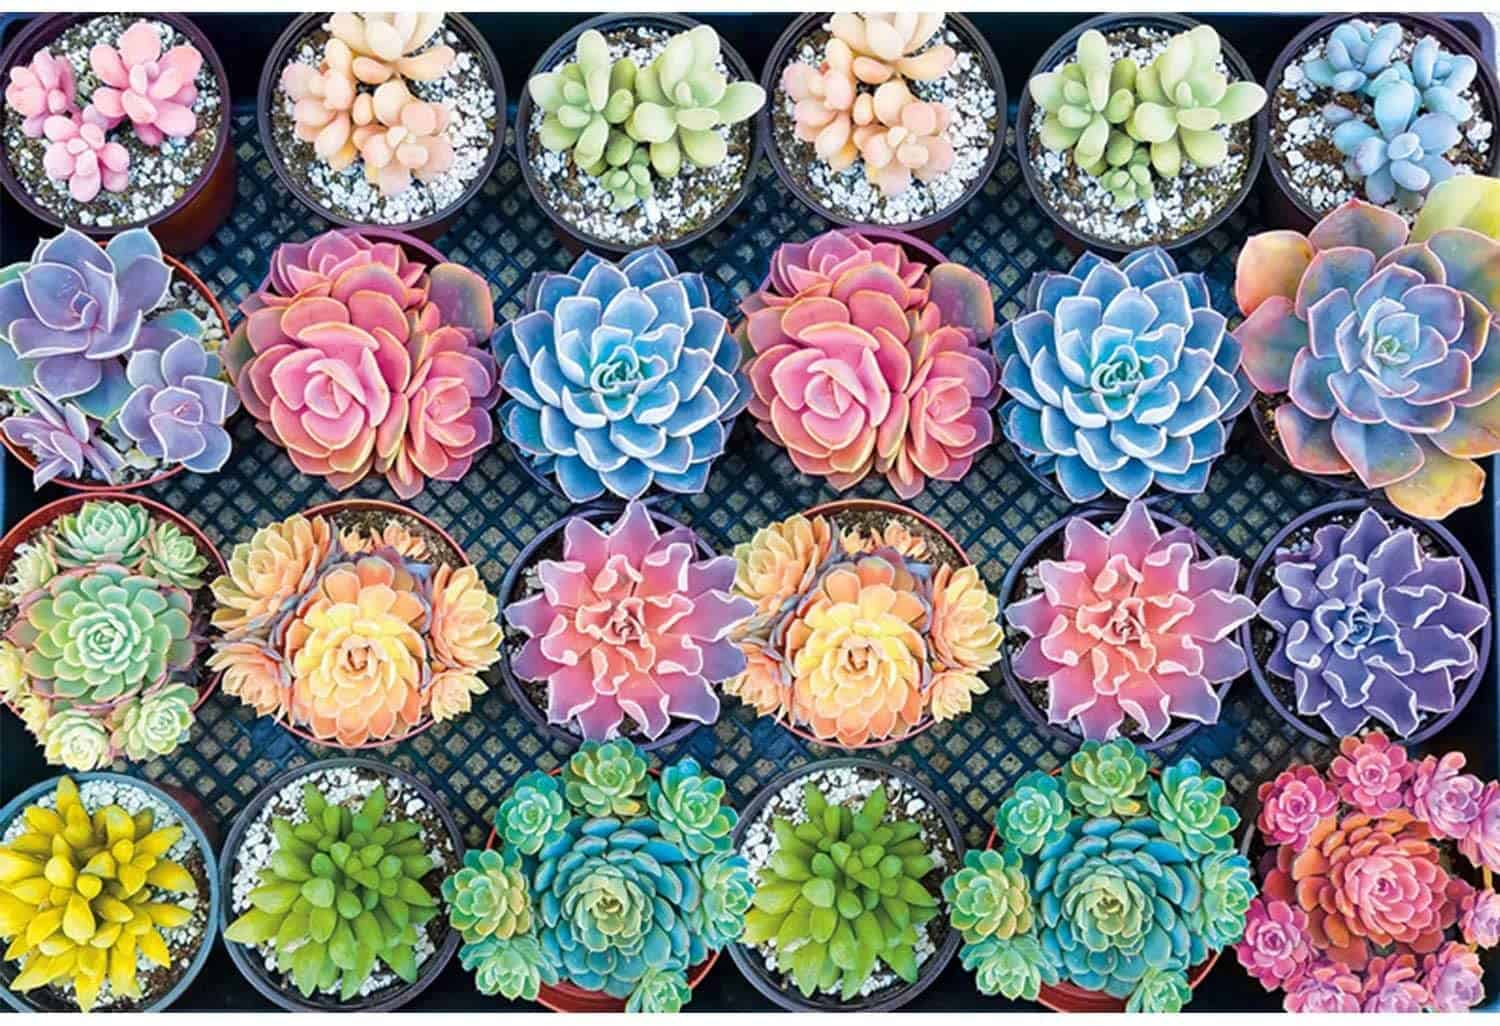 Jigsaw Puzzle 1000 Pieces for Adults Brain IQ Developing Magical Game (Succulent Plants Jigsaw Puzzle)